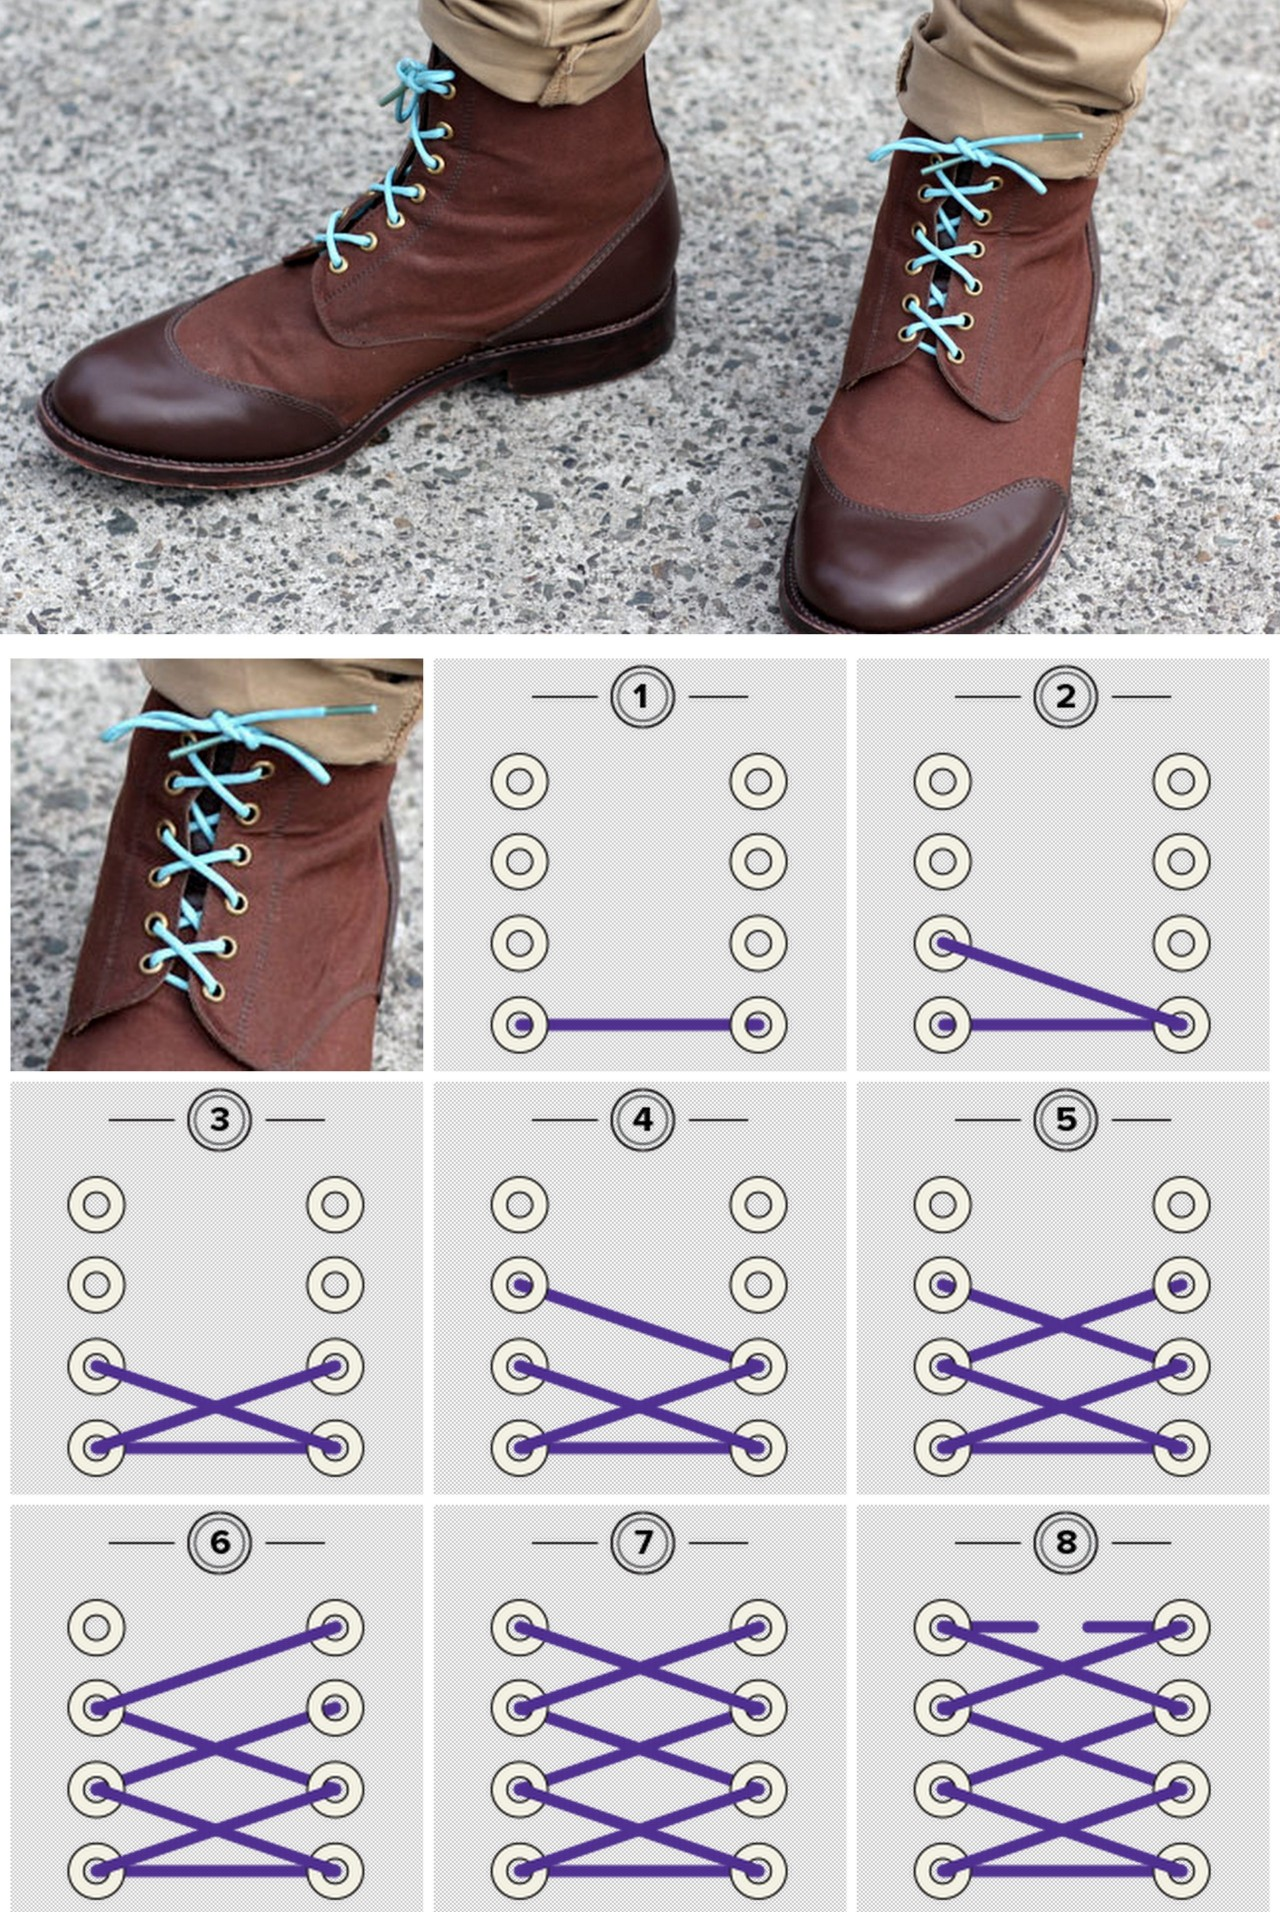 truebluemeandyou:  DIY Shoelace Styling from Mavericks Laces here (the Bow Tie pictured). All photos from Mavericks Laces (collage by me). Go to the link for other lace styles. I first saw these laces at Eat Drink Chic here with all the lace colors and packaging.